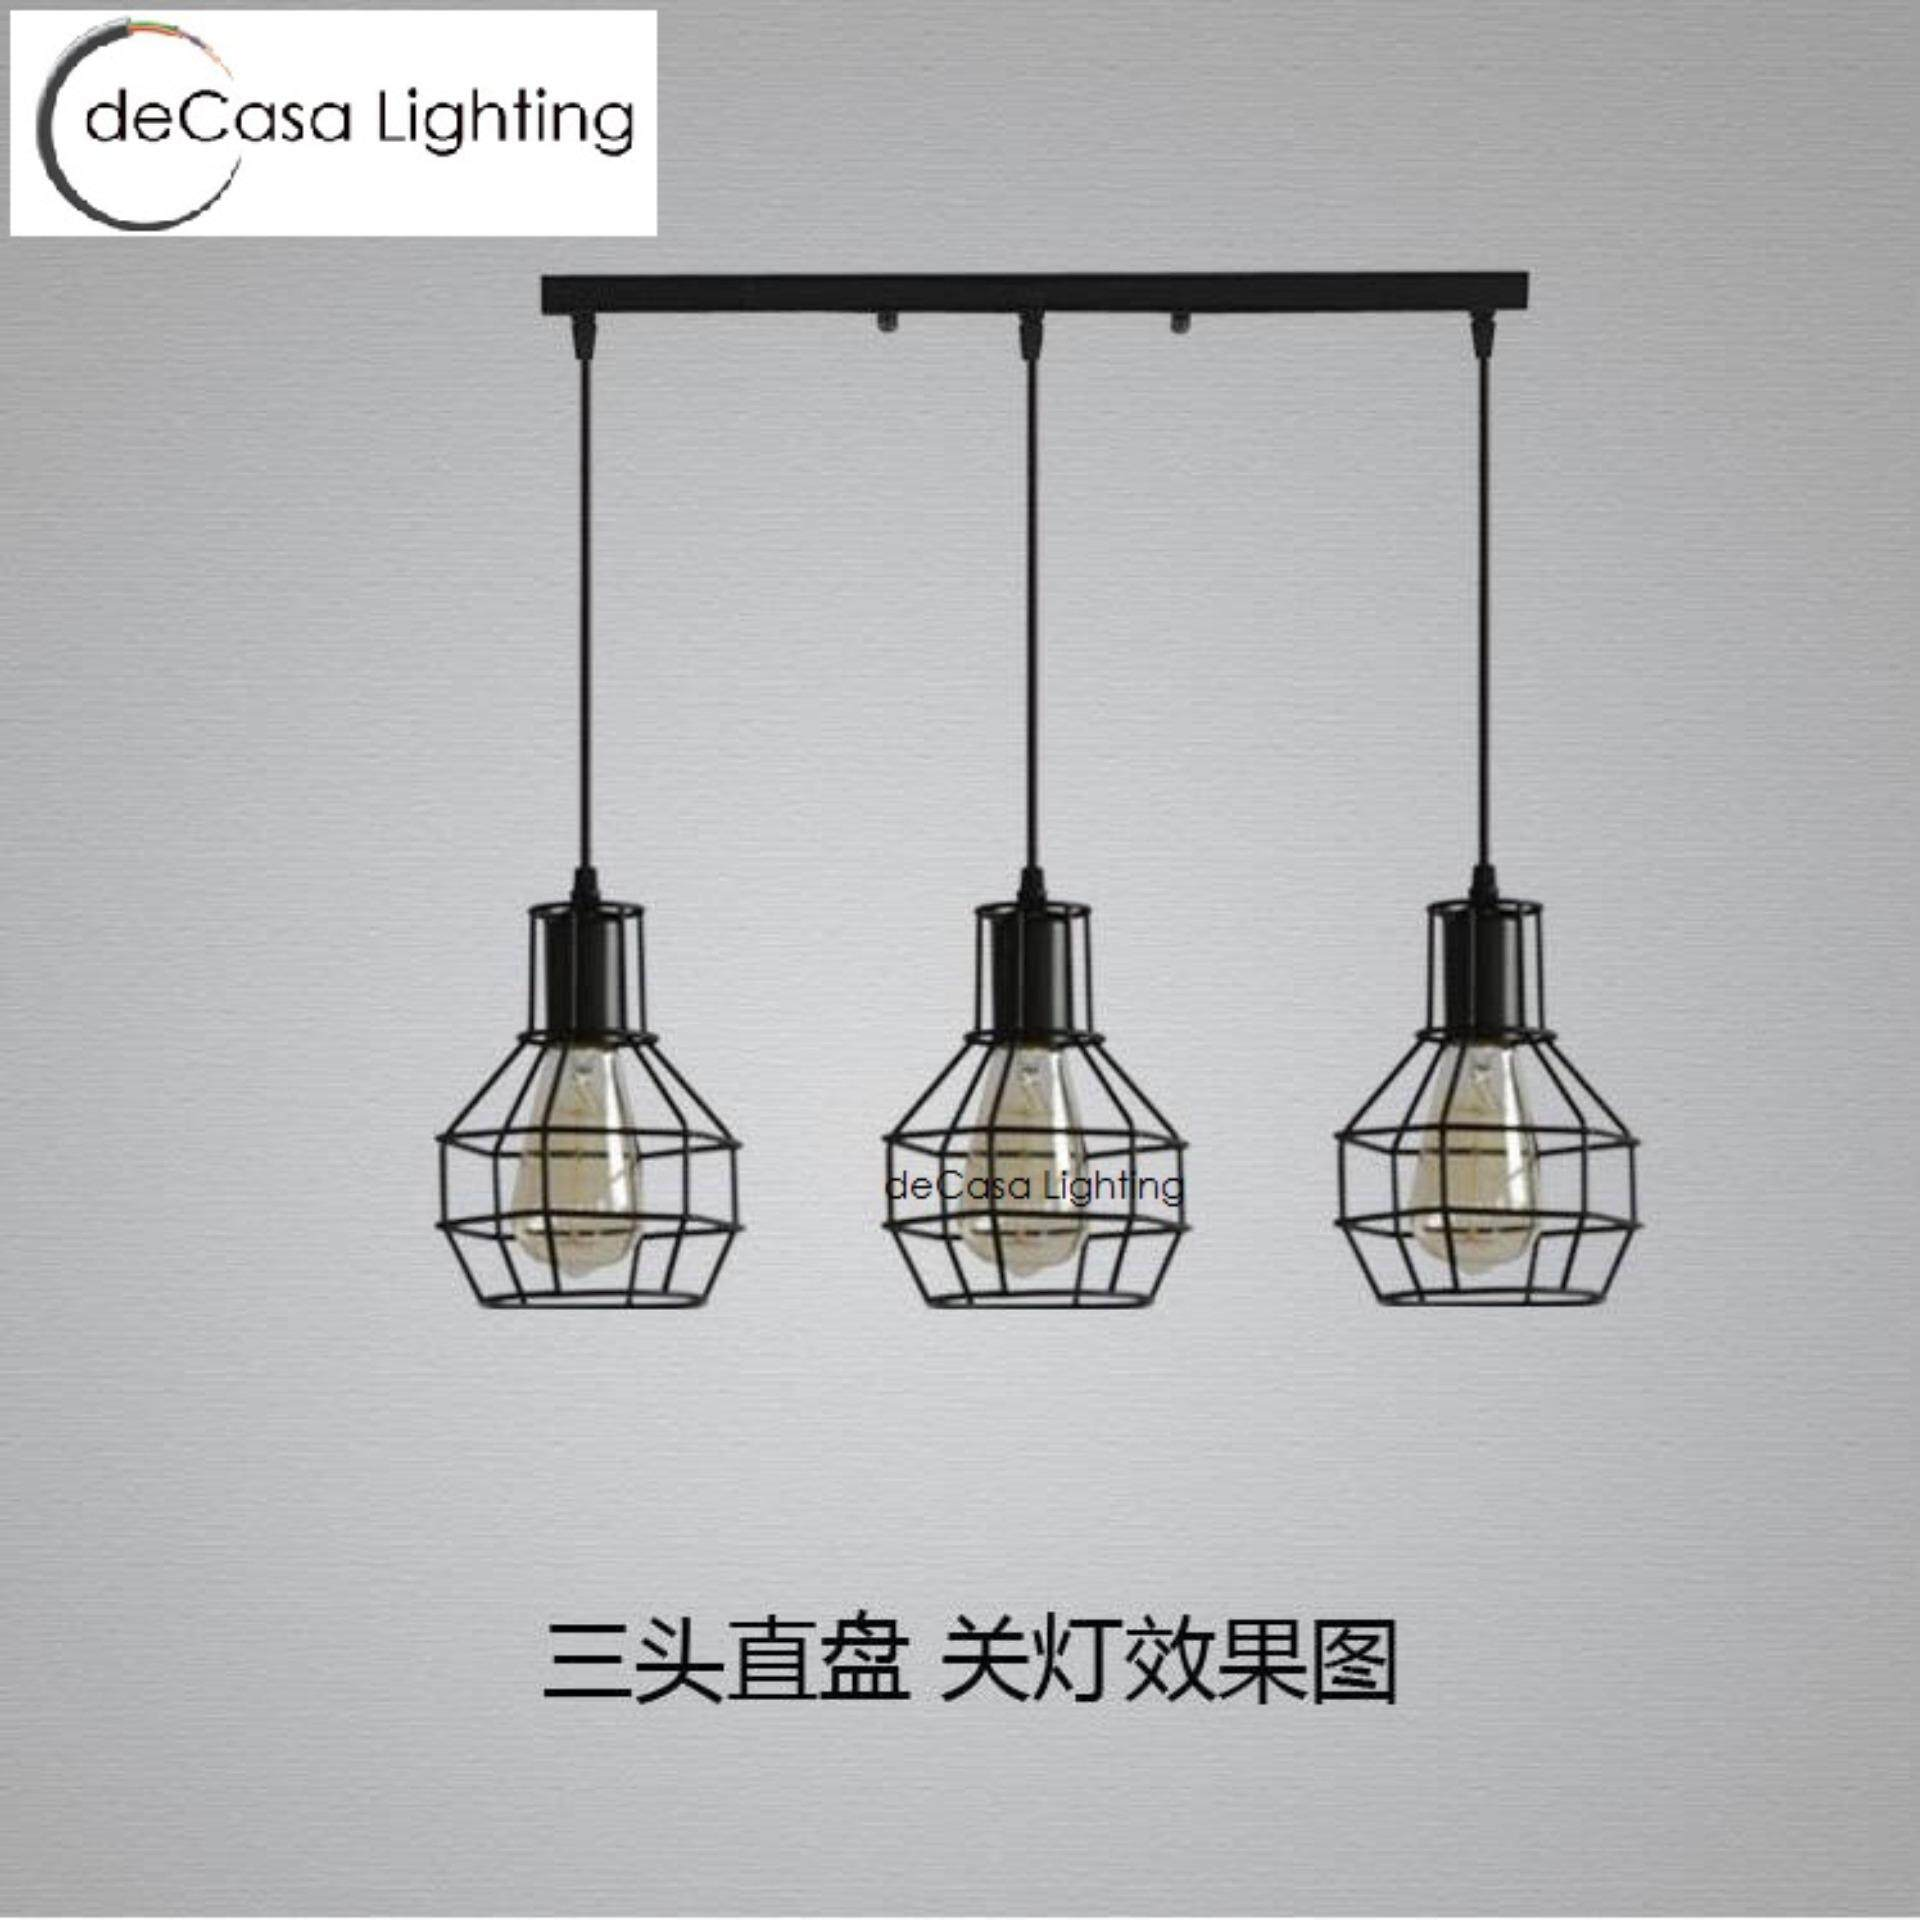 Ceiling lights pendants light long base decasa lighting designer ceiling lights pendants light long base decasa lighting designer decorative ceiling lights pendants light set of 3black loft designer decorative decasa mozeypictures Images